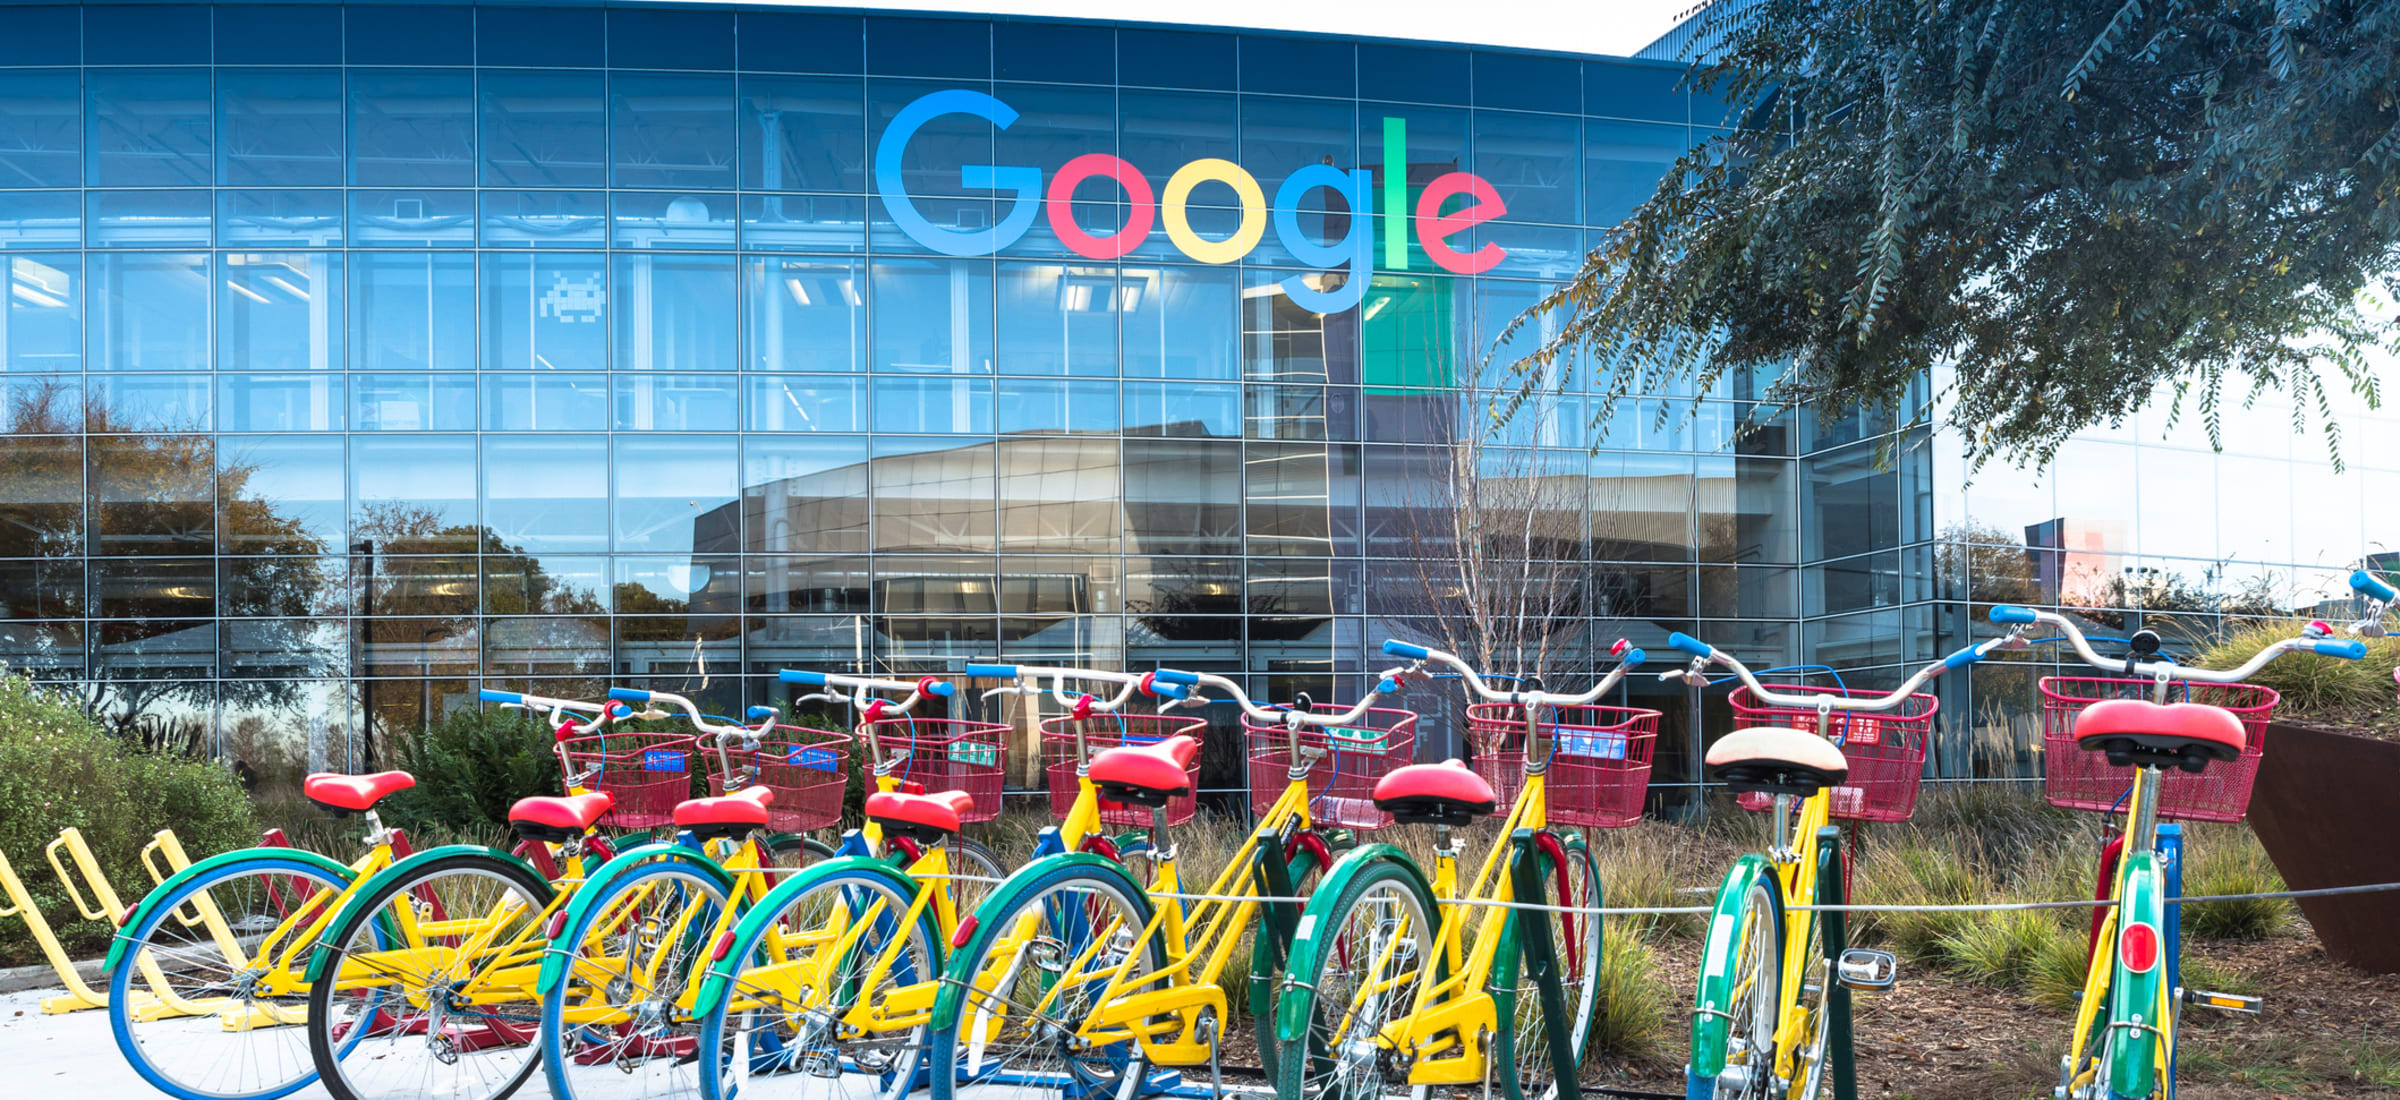 photo - Exterior of Google with colorful bikes lined up